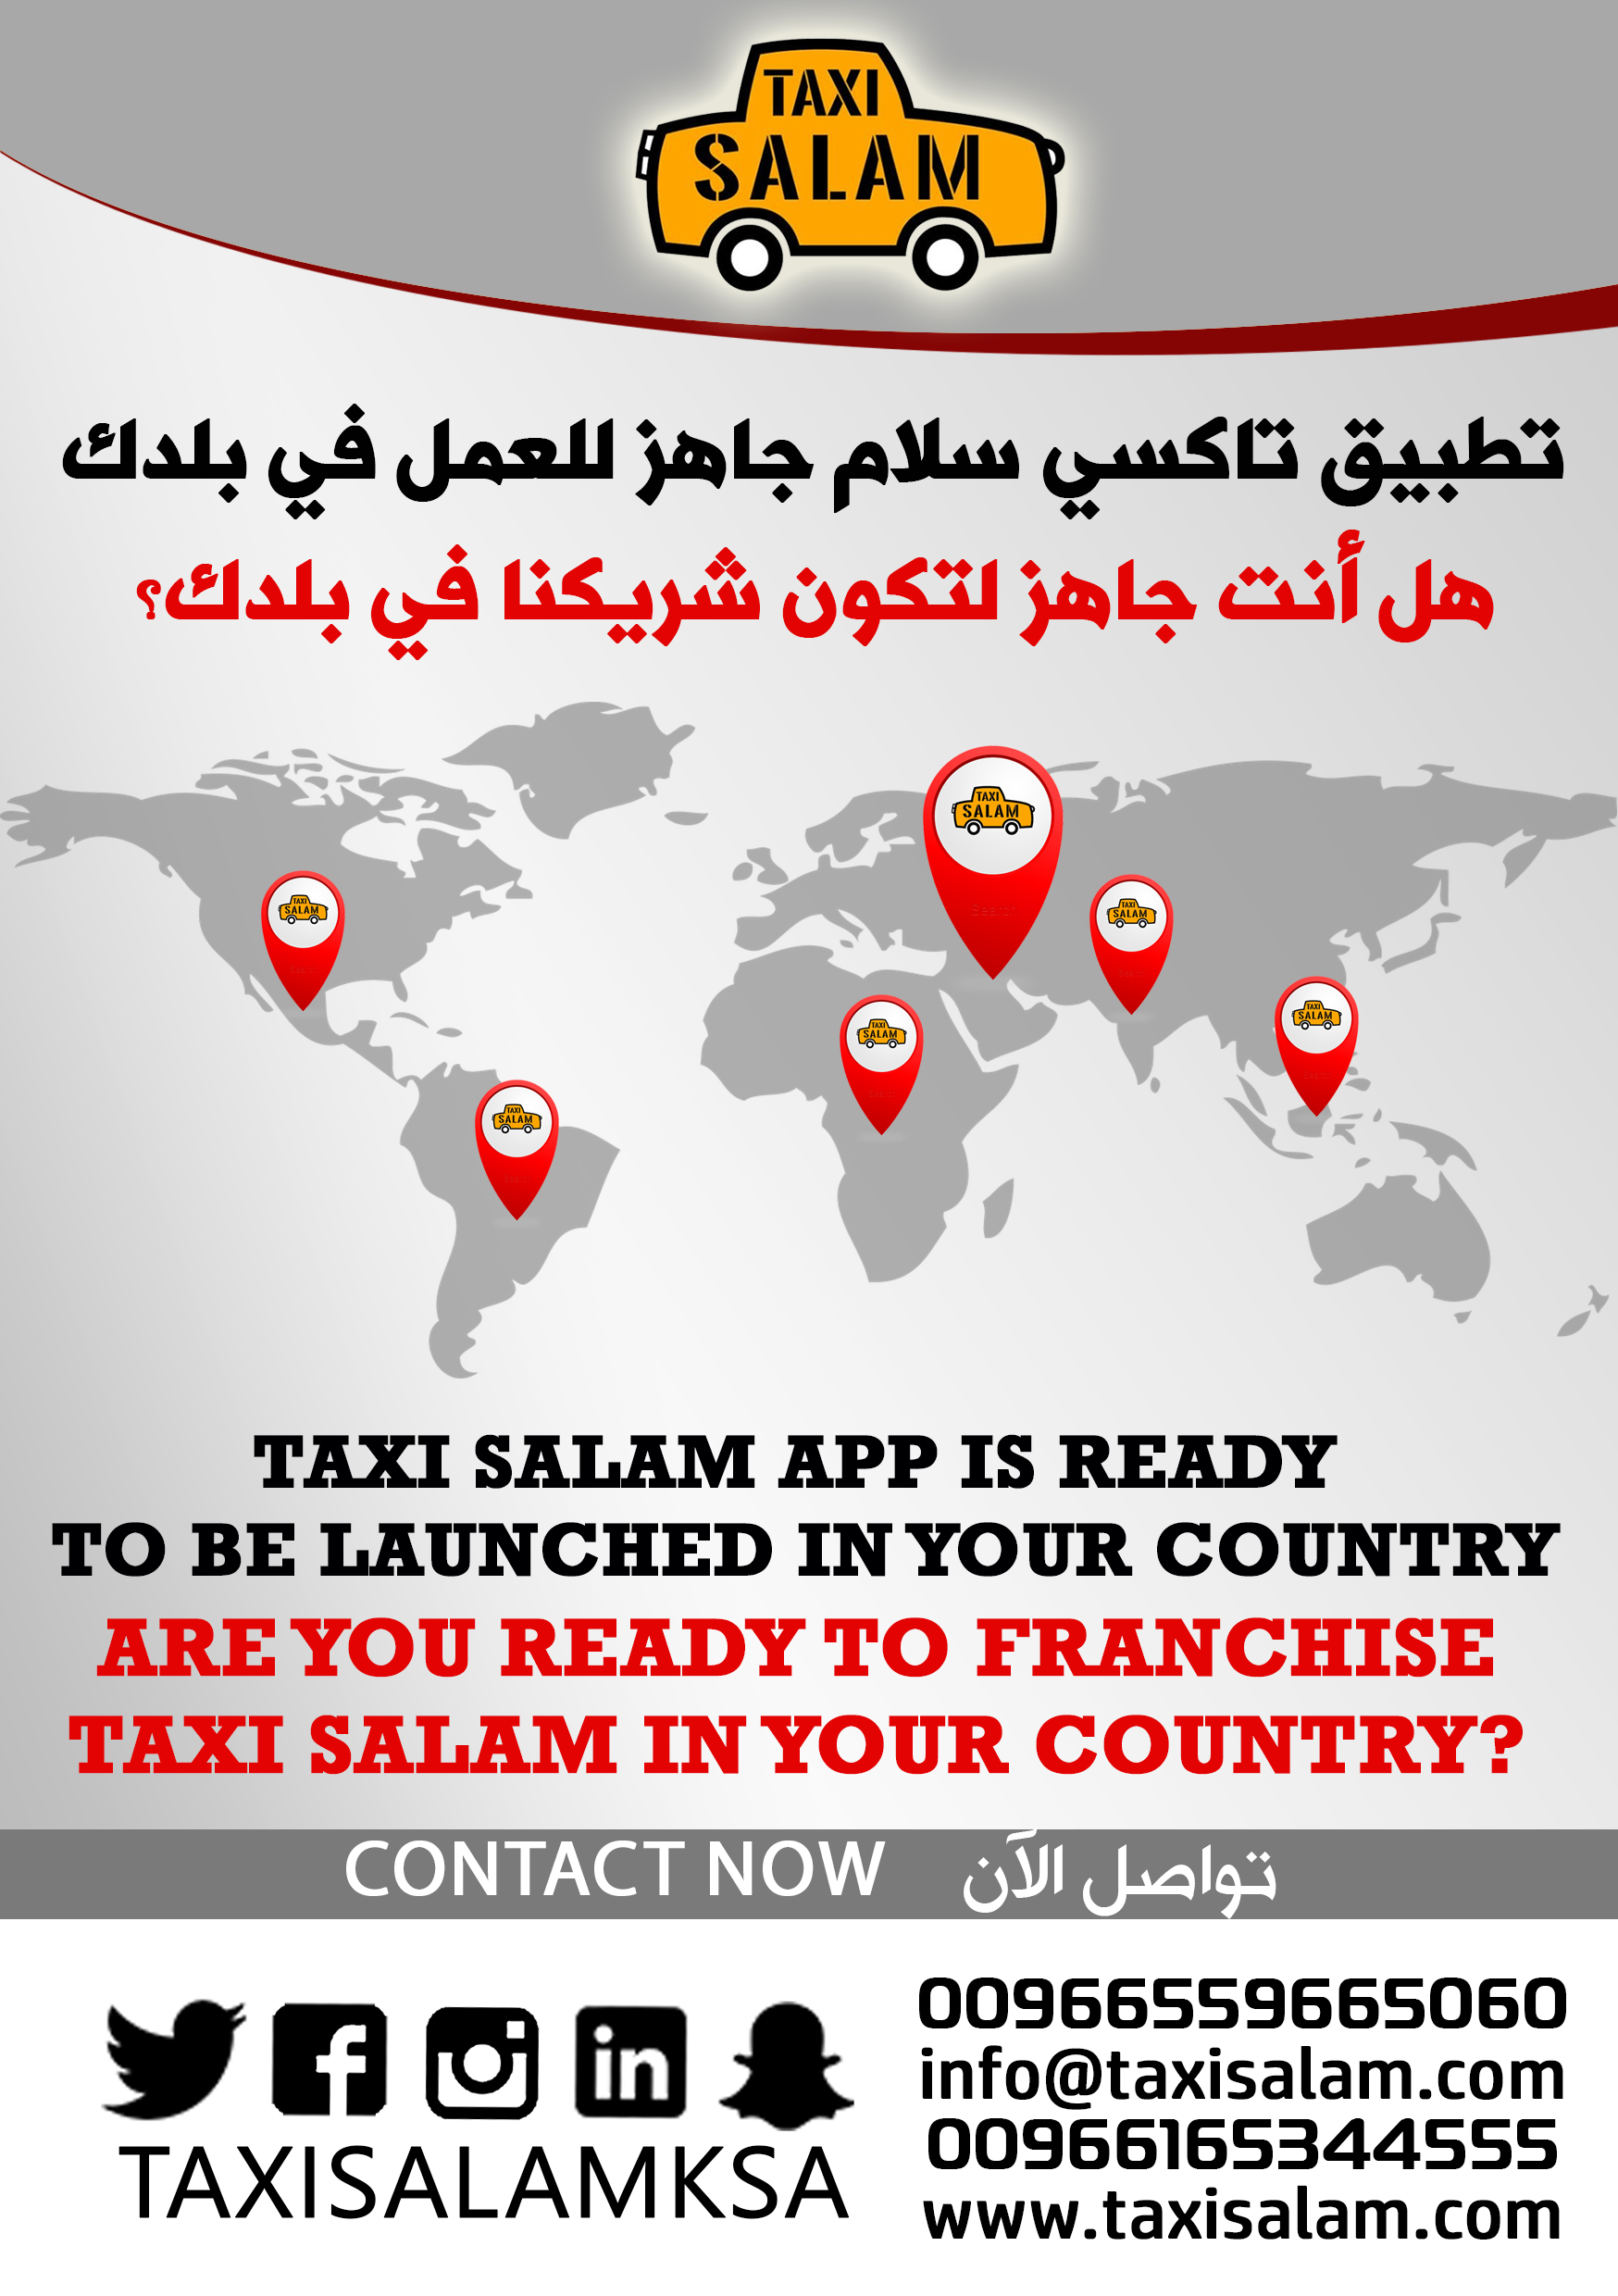 TAXI SALAM APPLICATION